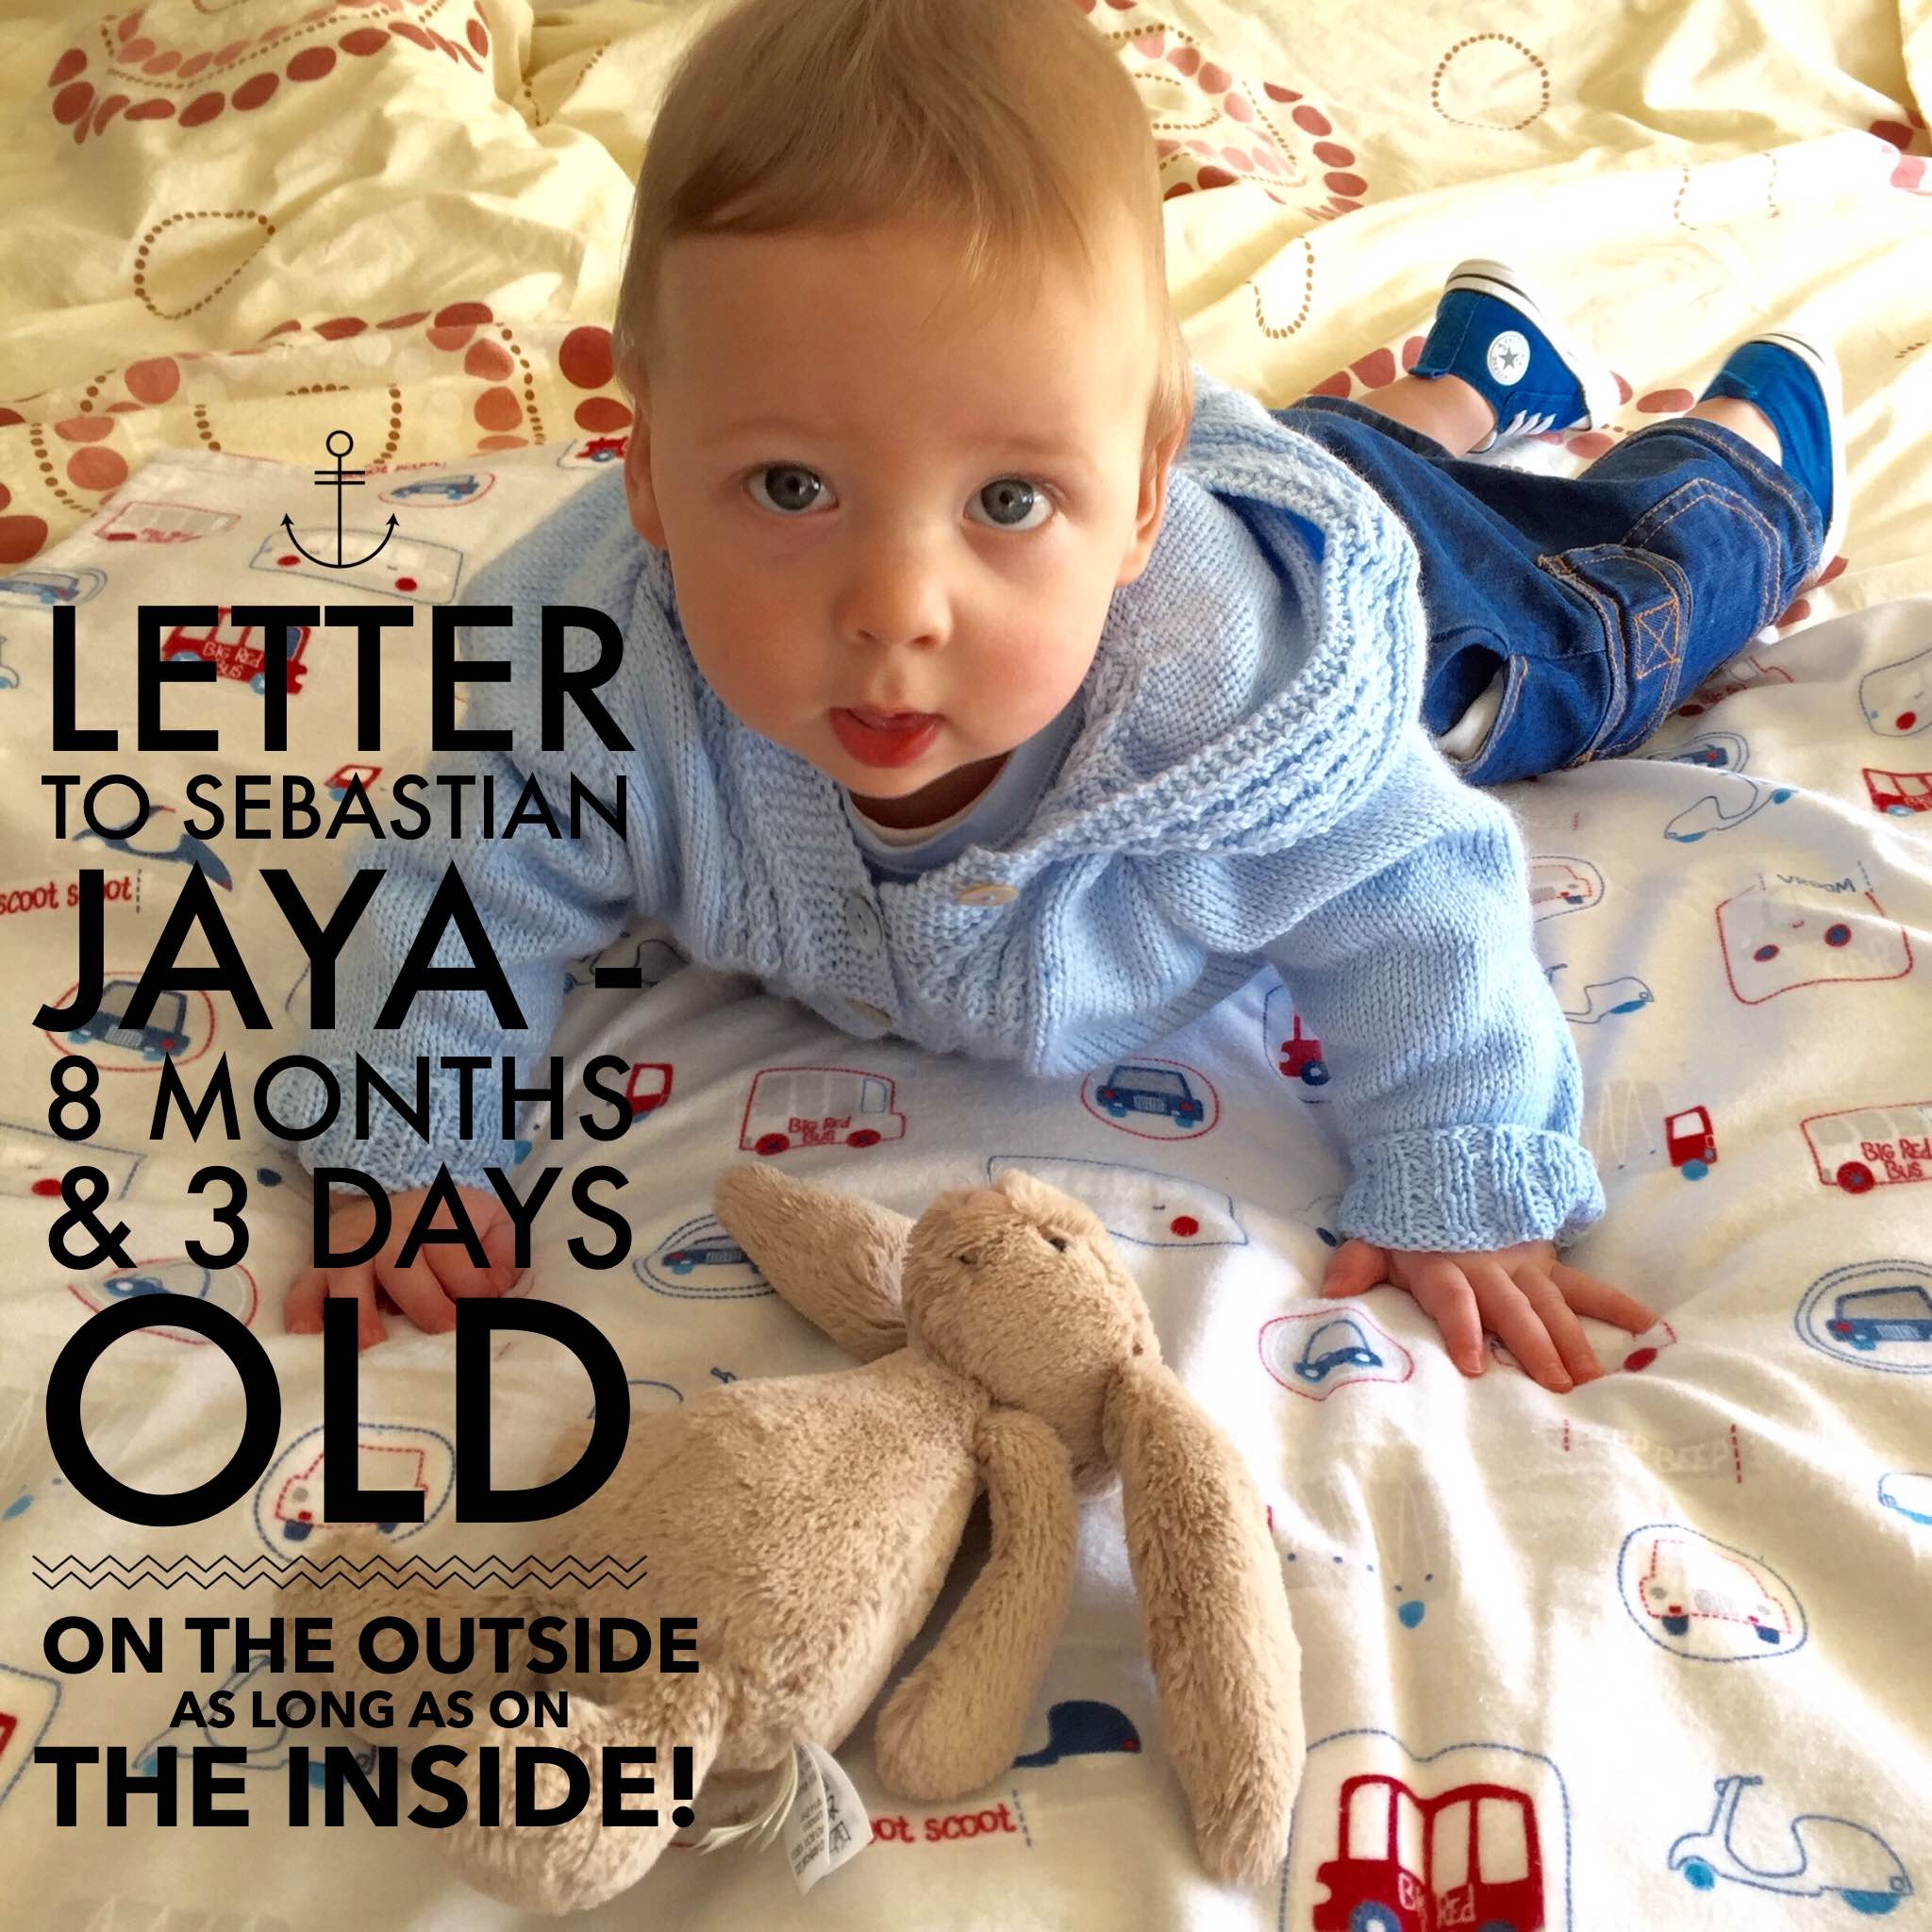 Letter to SJ 8 months old Title pic